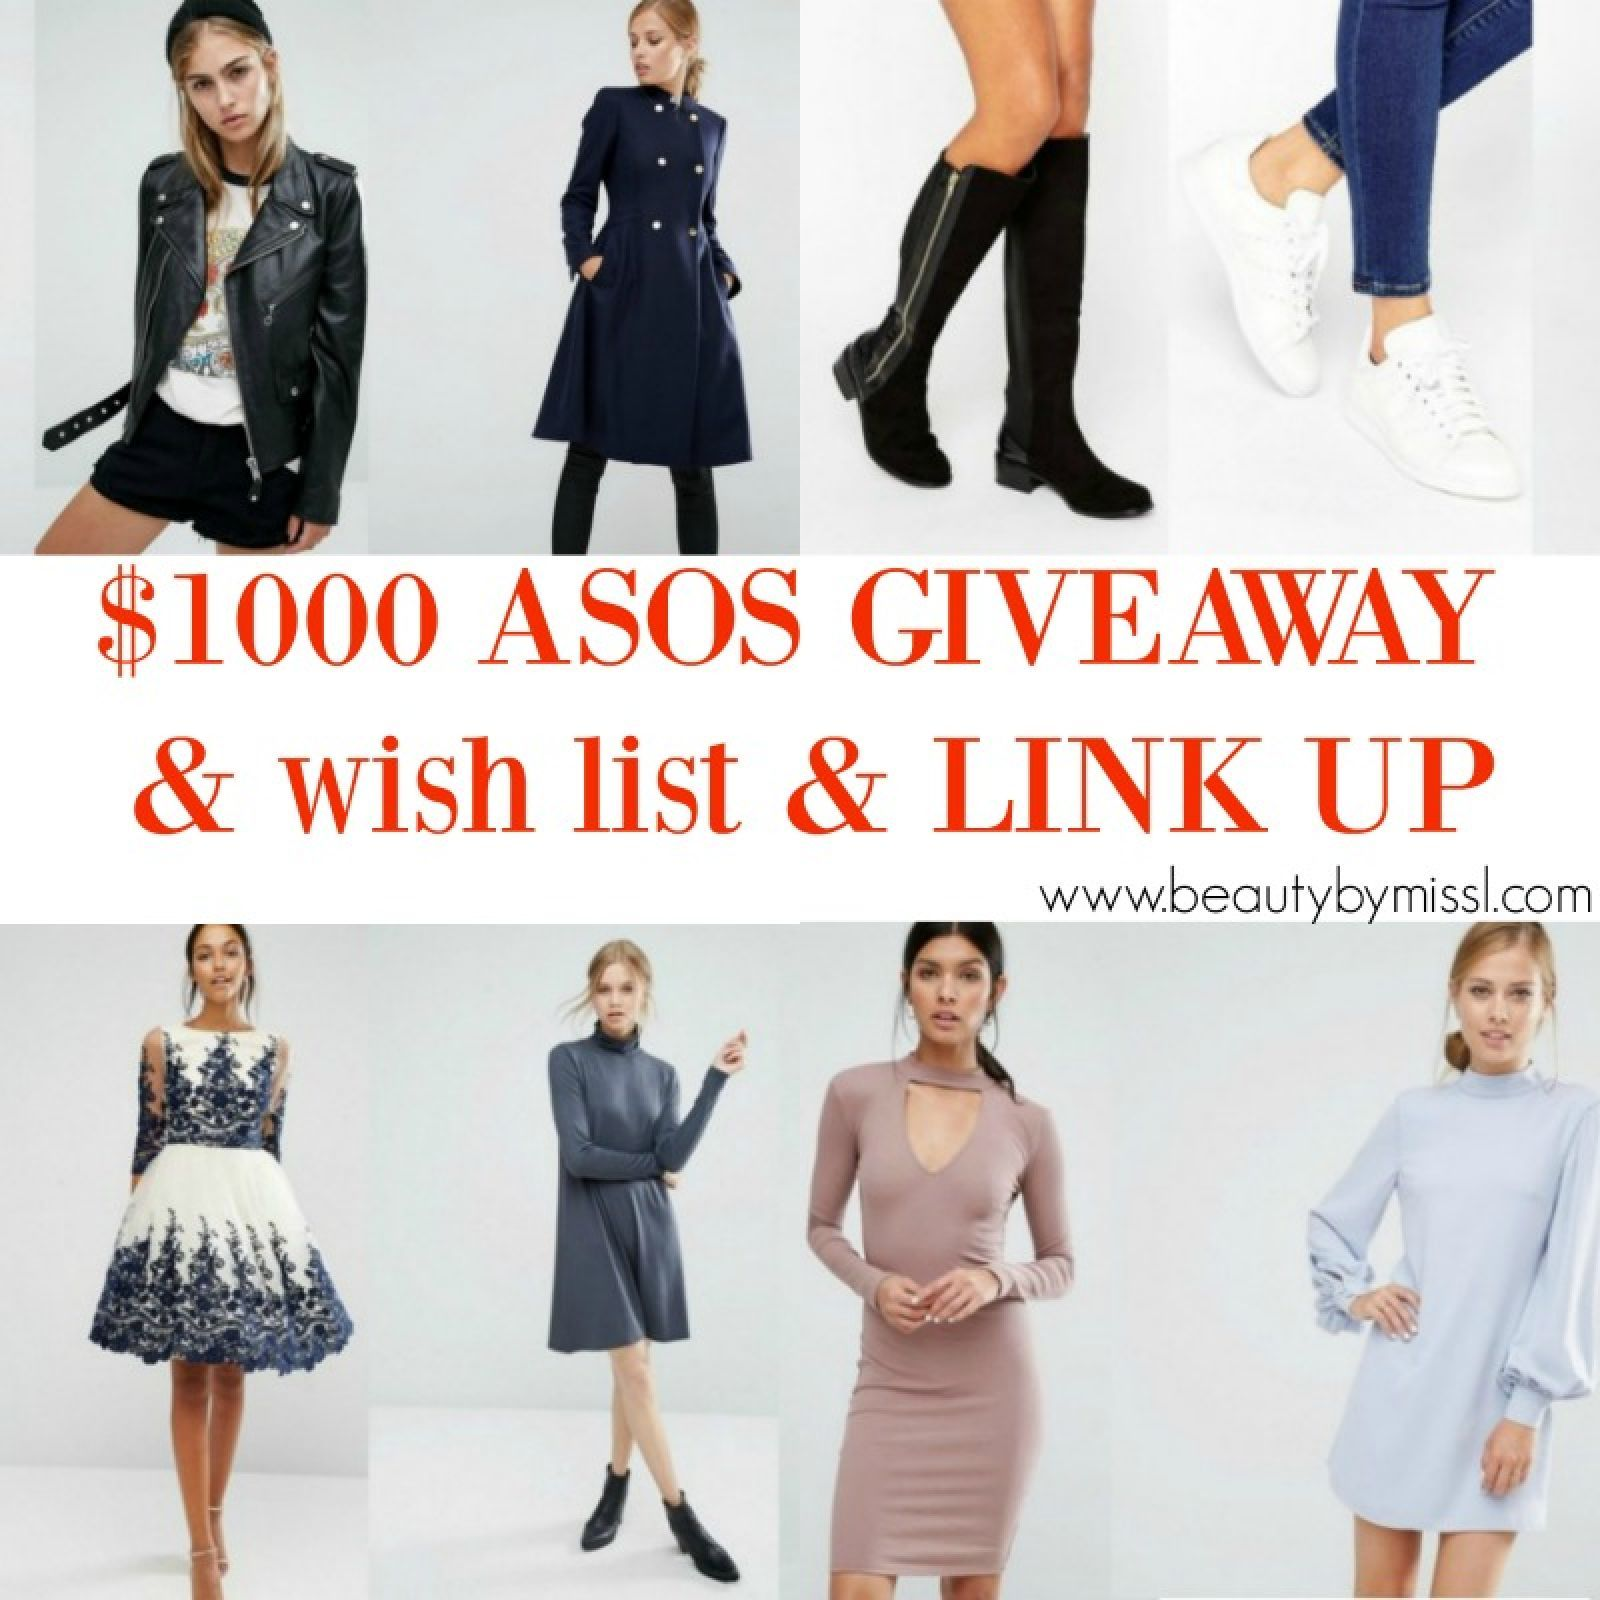 $1000 ASOS GIVEAWAY & wish list & LINK UP - http://www.beautybymissl.com/2016/09/asos-wish-list-link-up.html